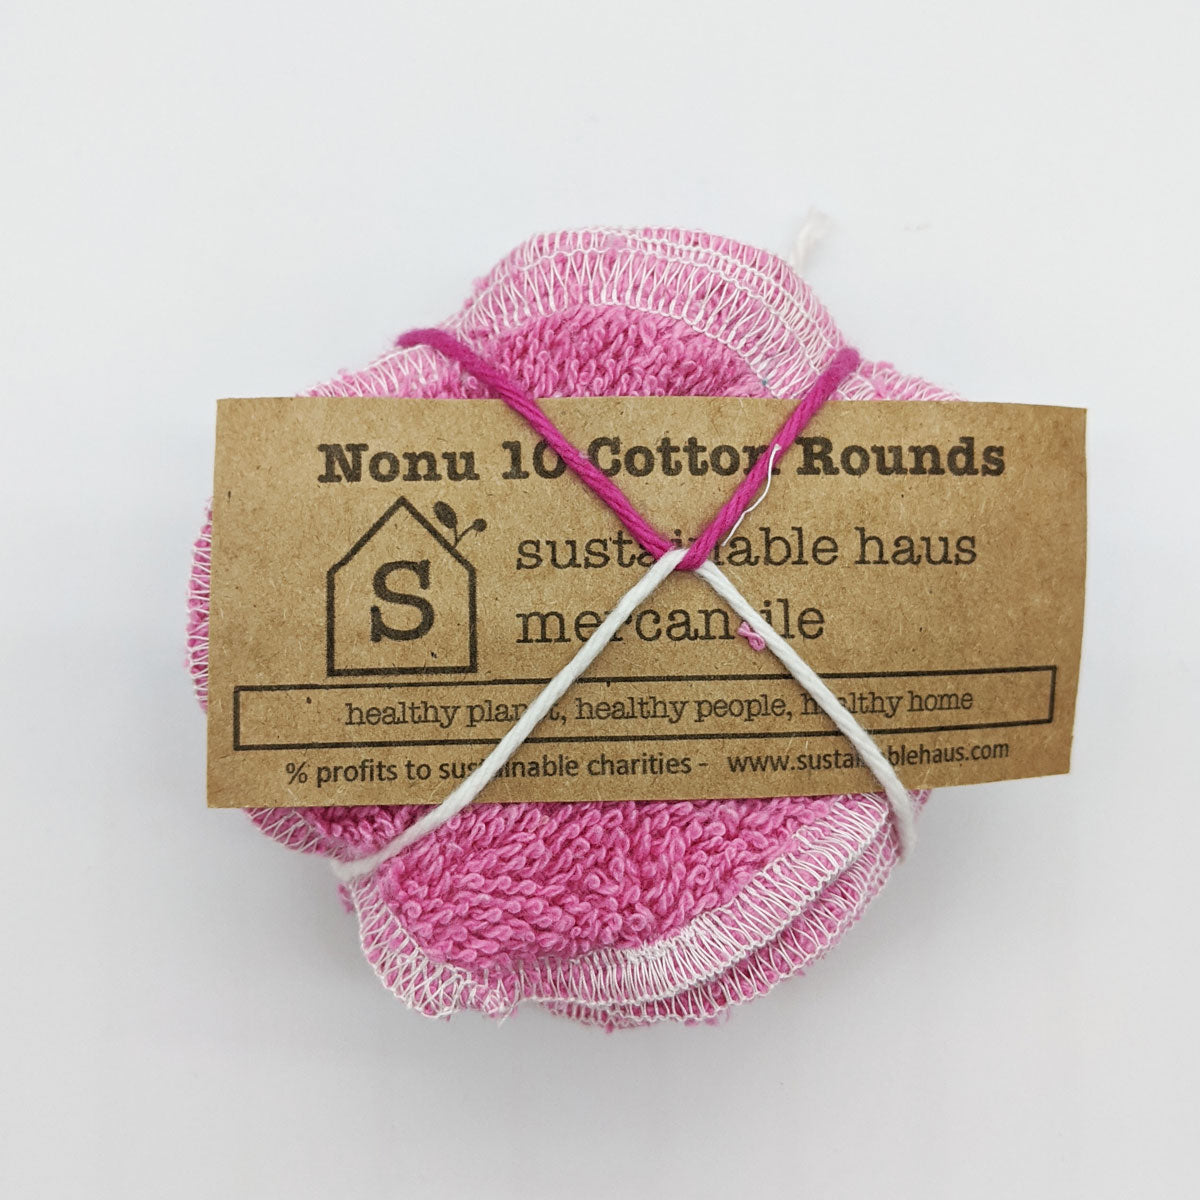 sustainable haus Reusable Cotton Rounds (10) - pink